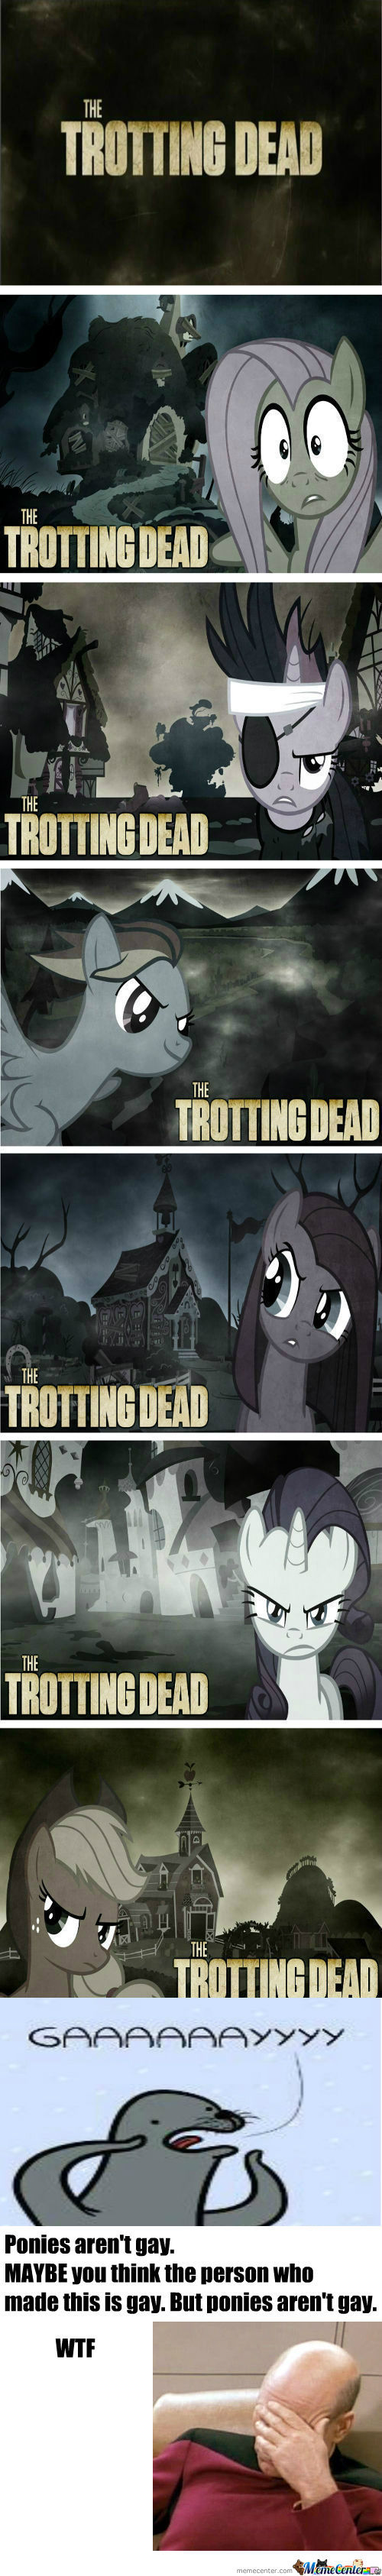 [RMX] [RMX] New Grimdark Ponies: The Trotting Dead